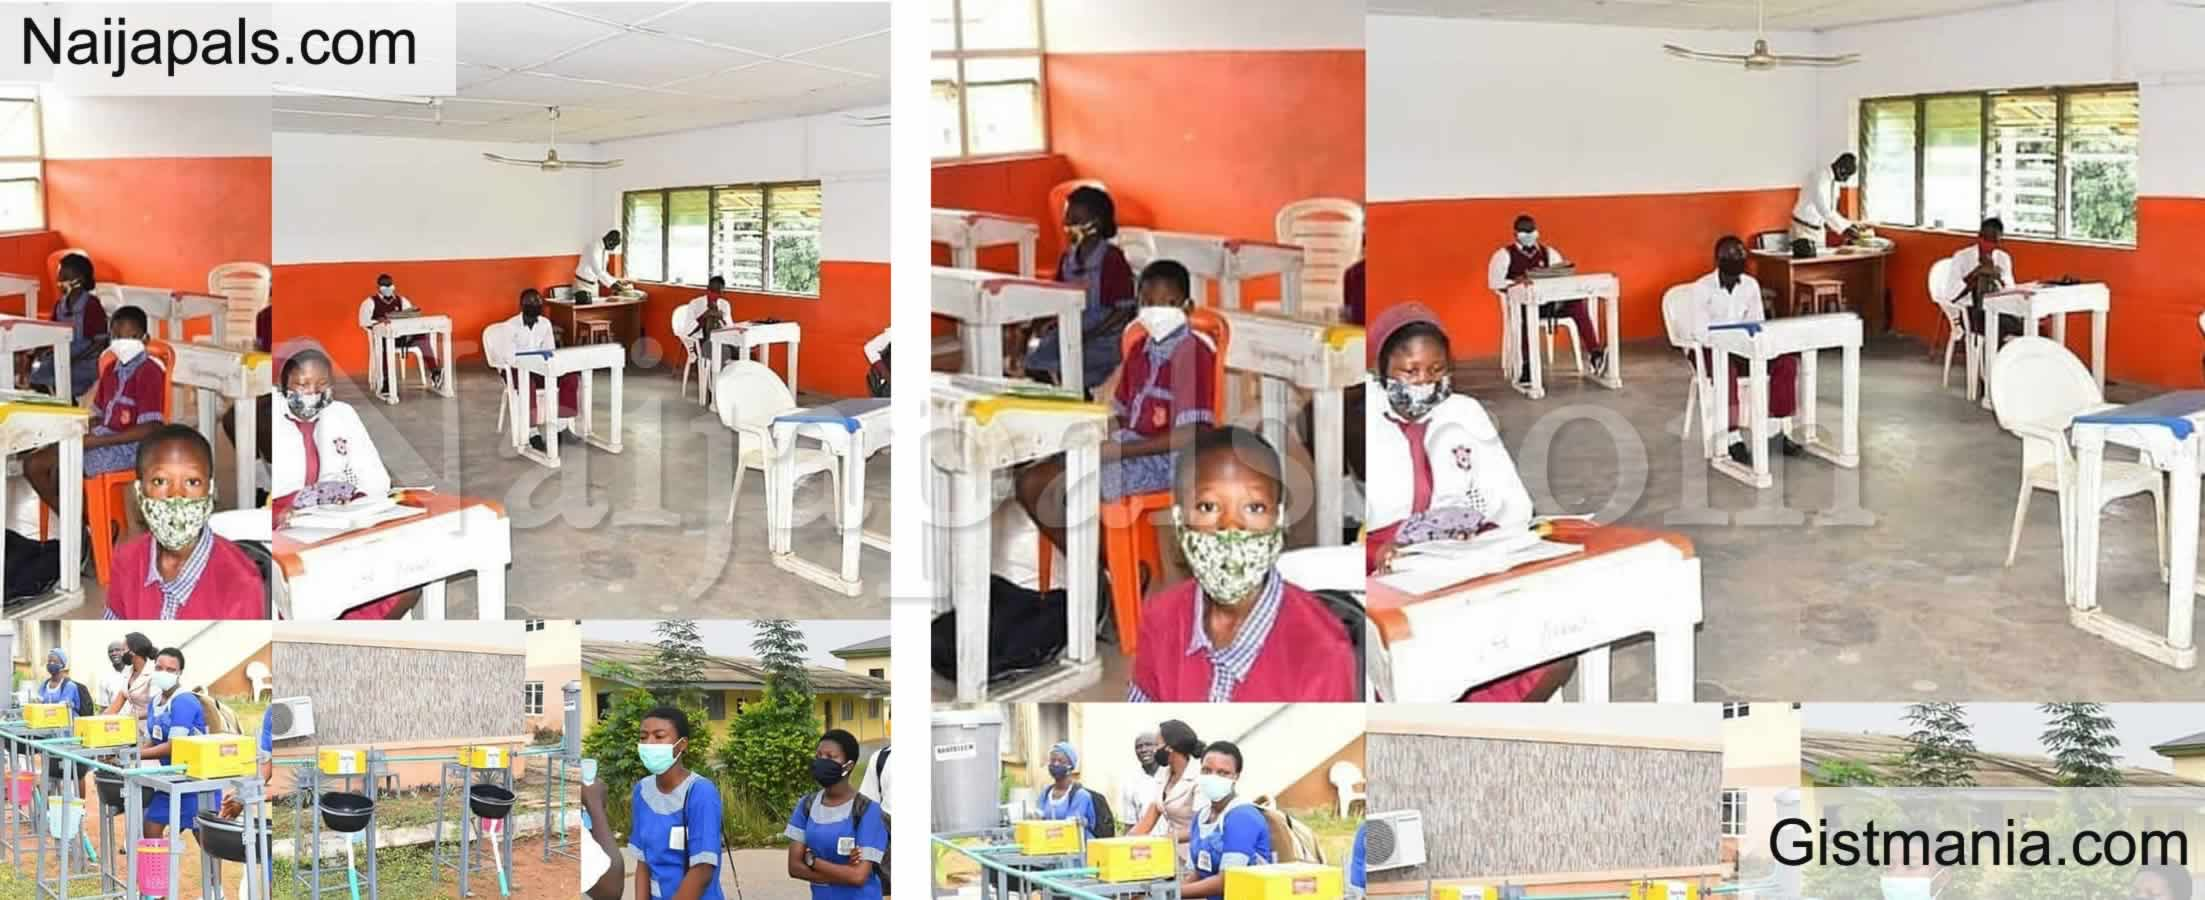 "<img alt='.' class='lazyload' data-src='https://img.gistmania.com/emot/news.gif' /> ""<b>Environment Unsafe To Reopen Schools""- Imo Govt Says As Schools Are Yet To Reopen In The State</b>"